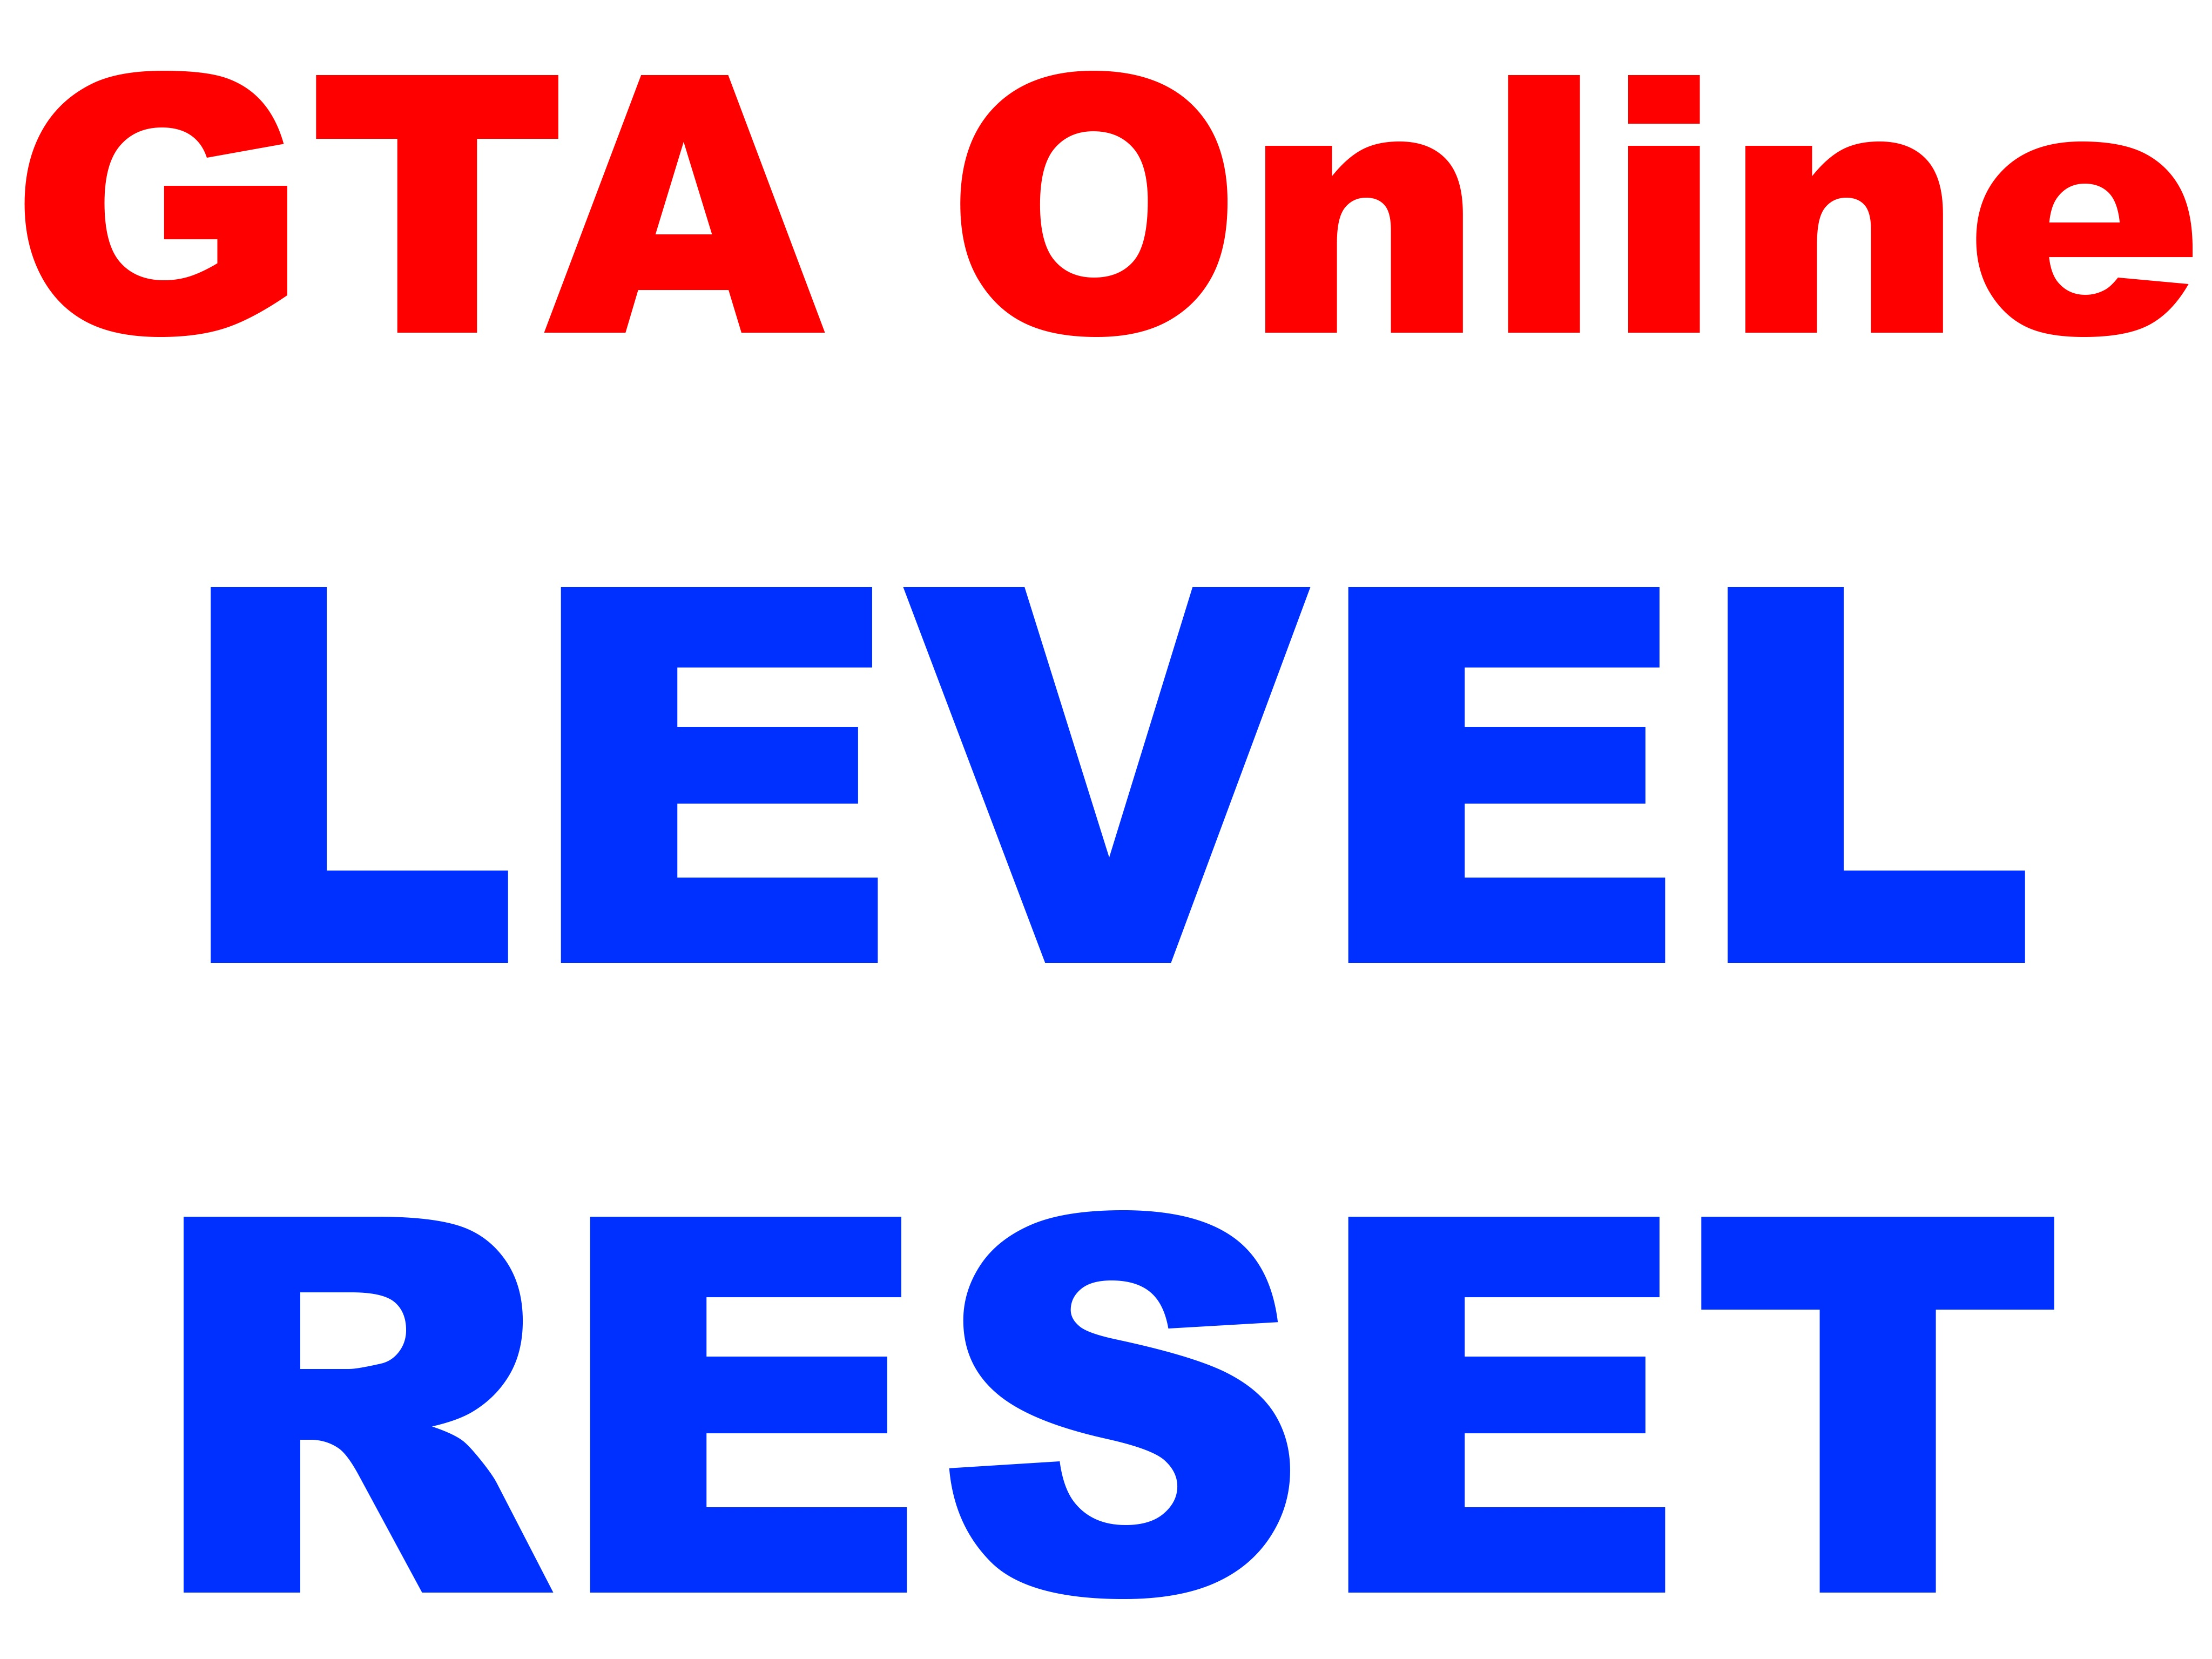 Grand Theft Auto V - RESET LEVEL (PC)